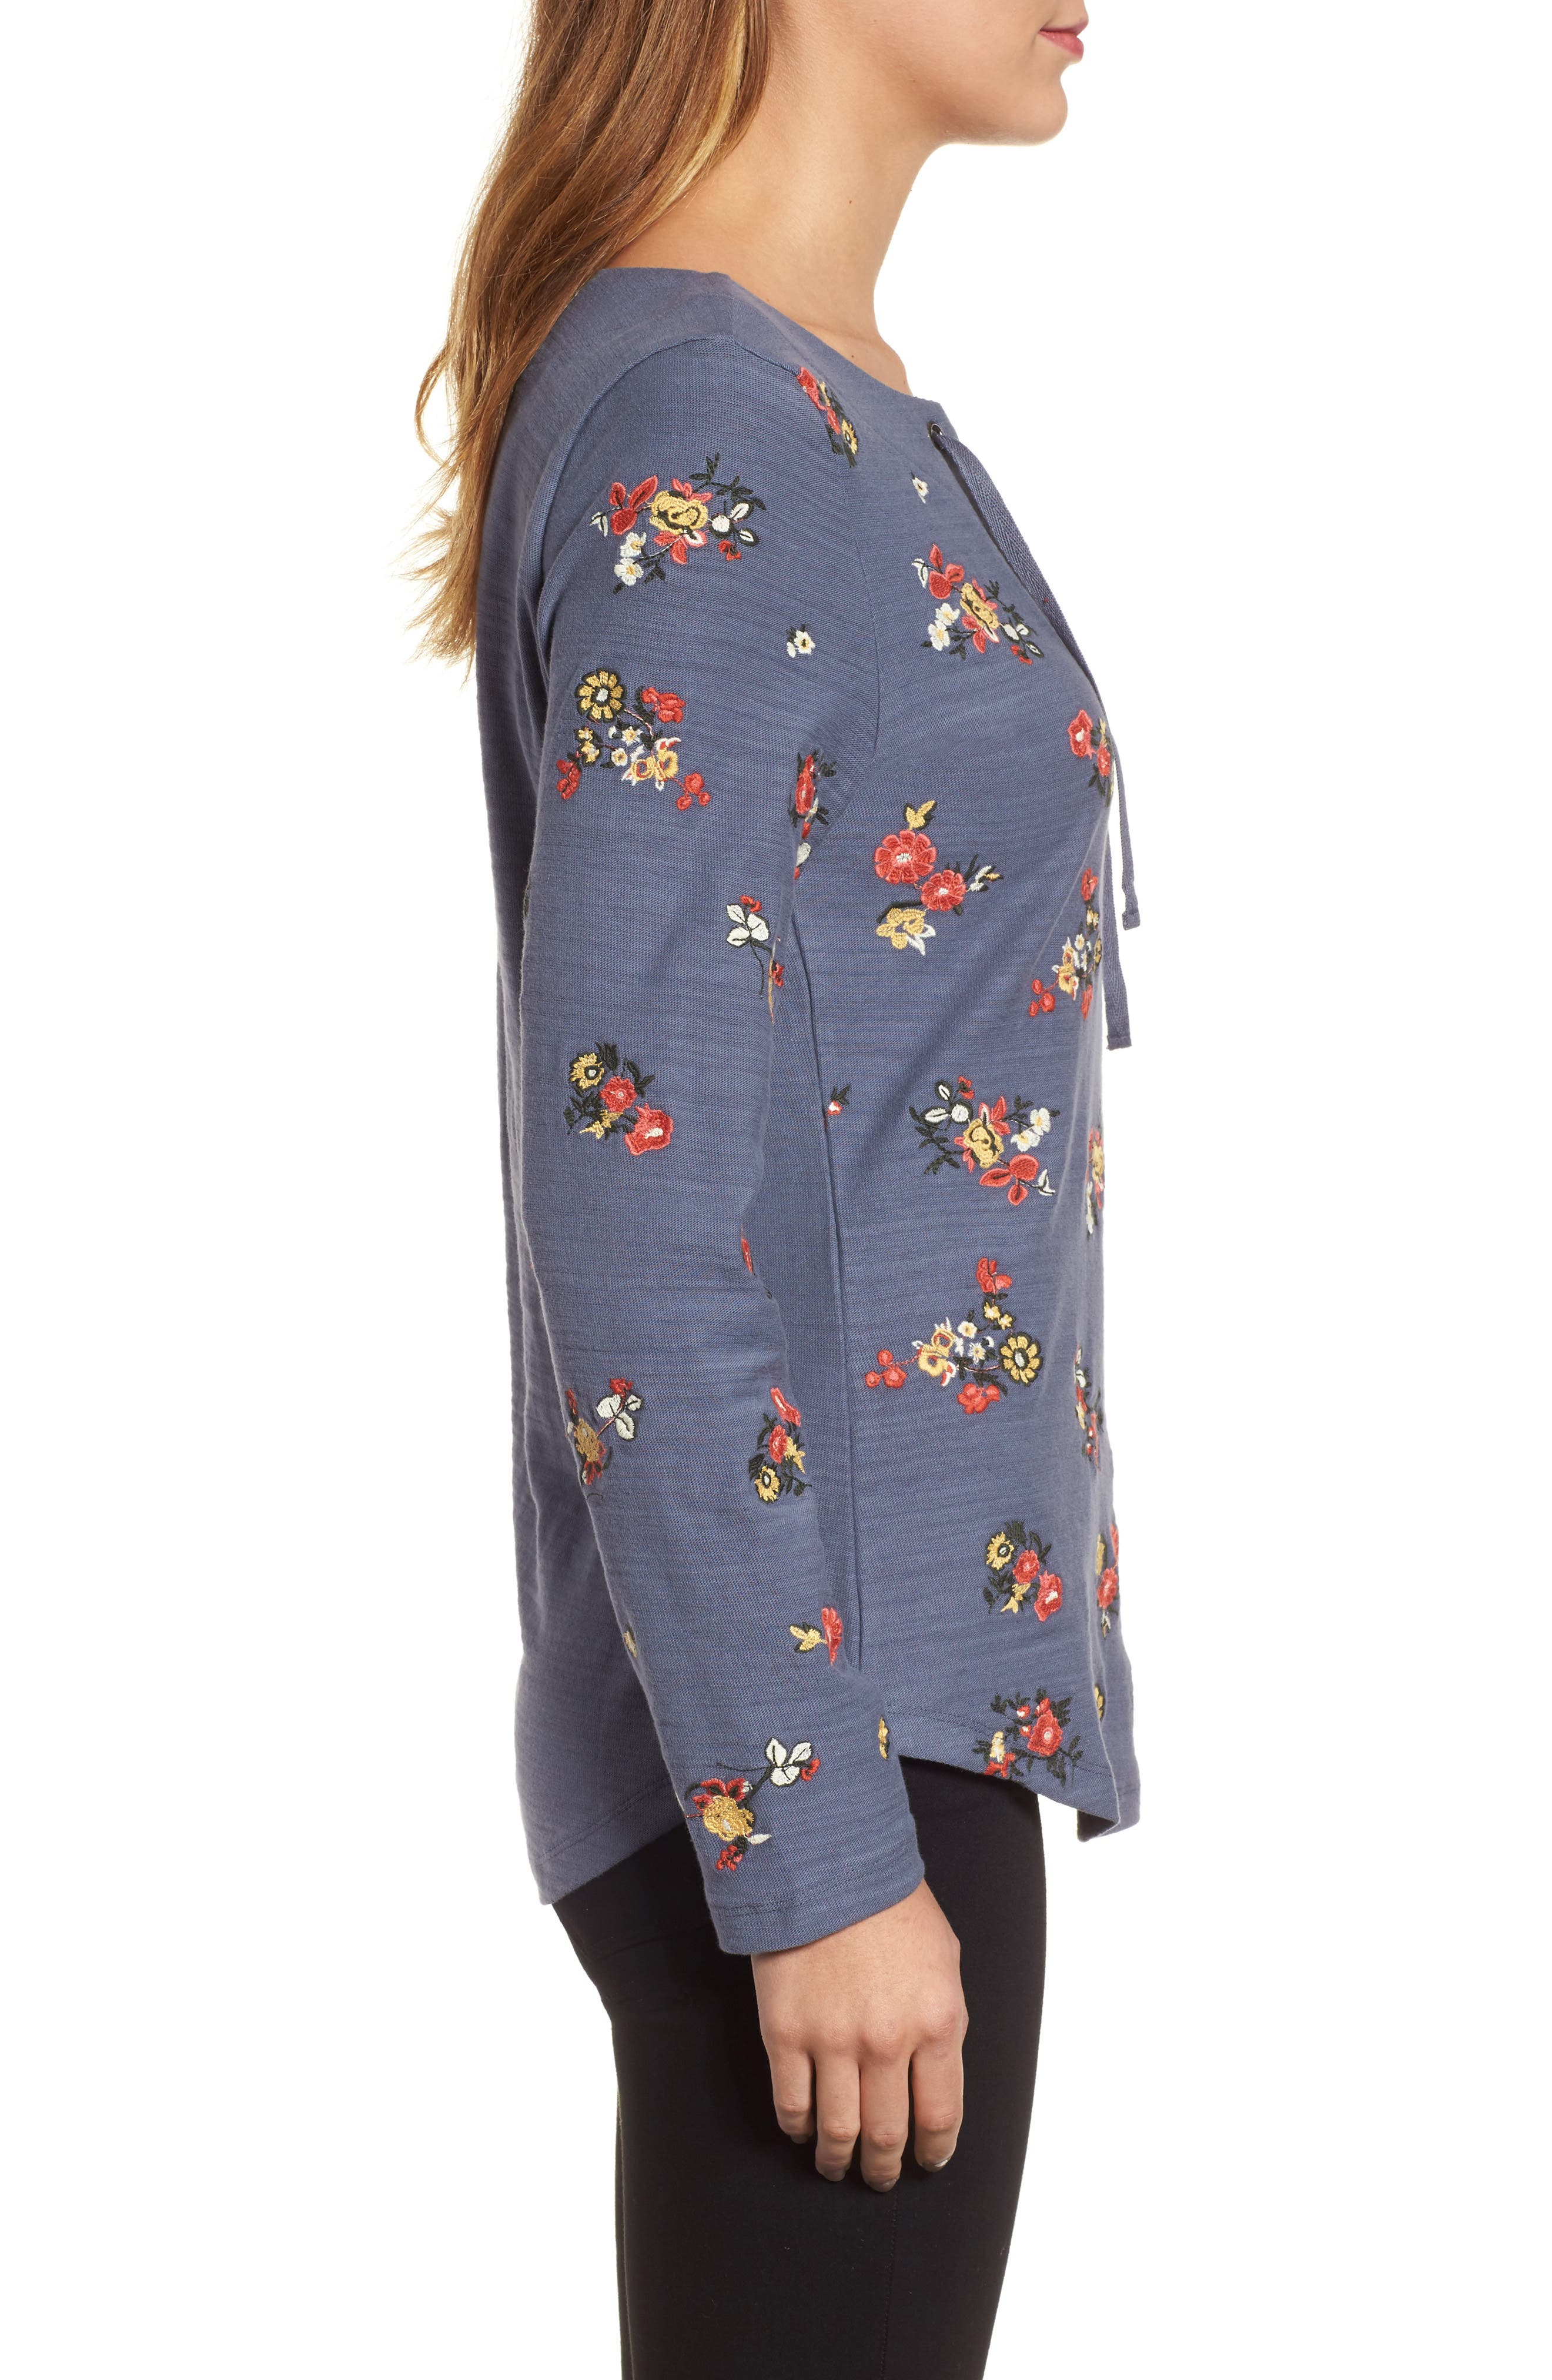 Lace-Up Neck Floral Embroidered Sweatshirt,                             Alternate thumbnail 3, color,                             Grey Floral